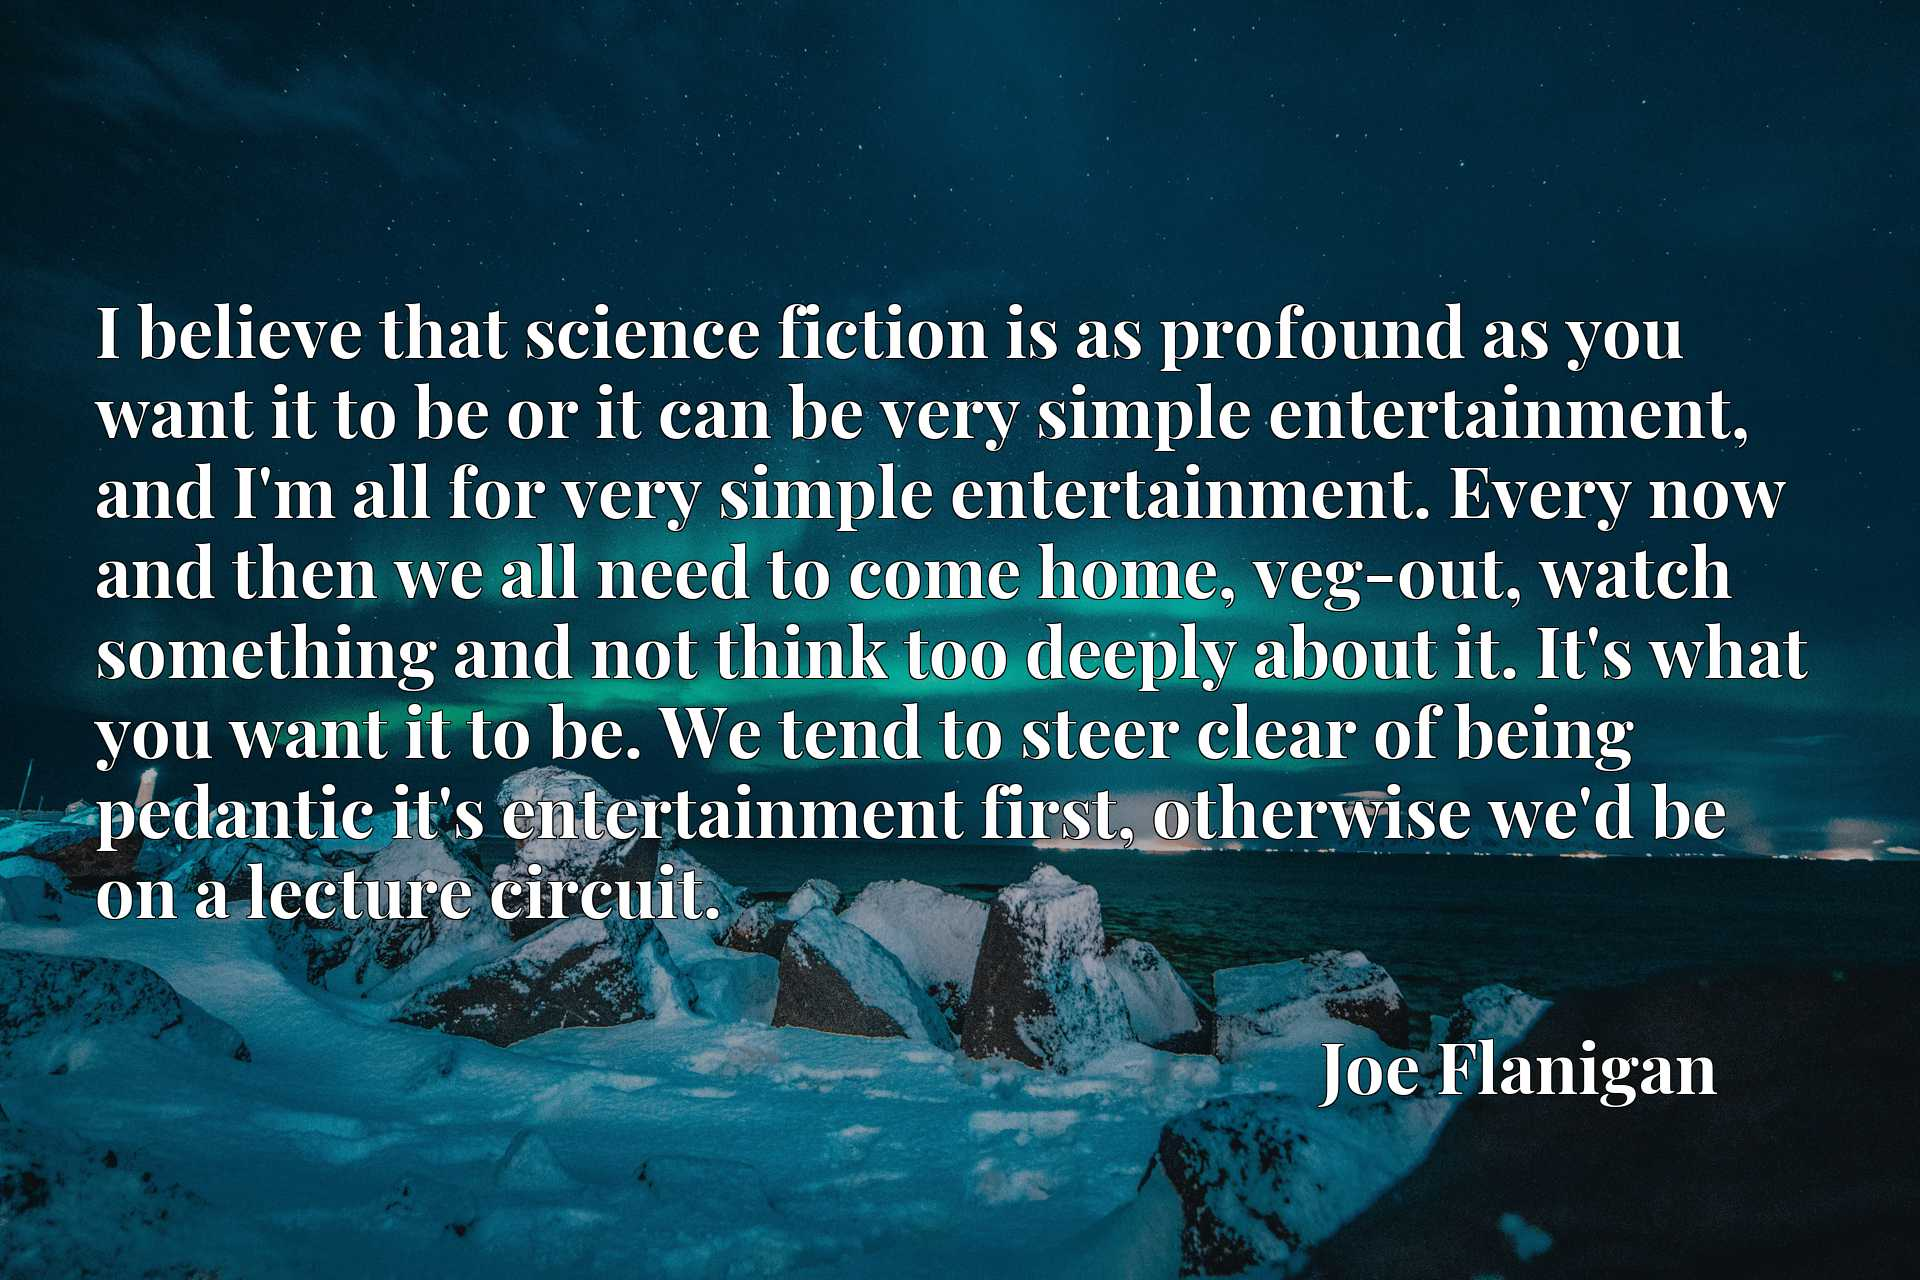 I believe that science fiction is as profound as you want it to be or it can be very simple entertainment, and I'm all for very simple entertainment. Every now and then we all need to come home, veg-out, watch something and not think too deeply about it. It's what you want it to be. We tend to steer clear of being pedantic it's entertainment first, otherwise we'd be on a lecture circuit.